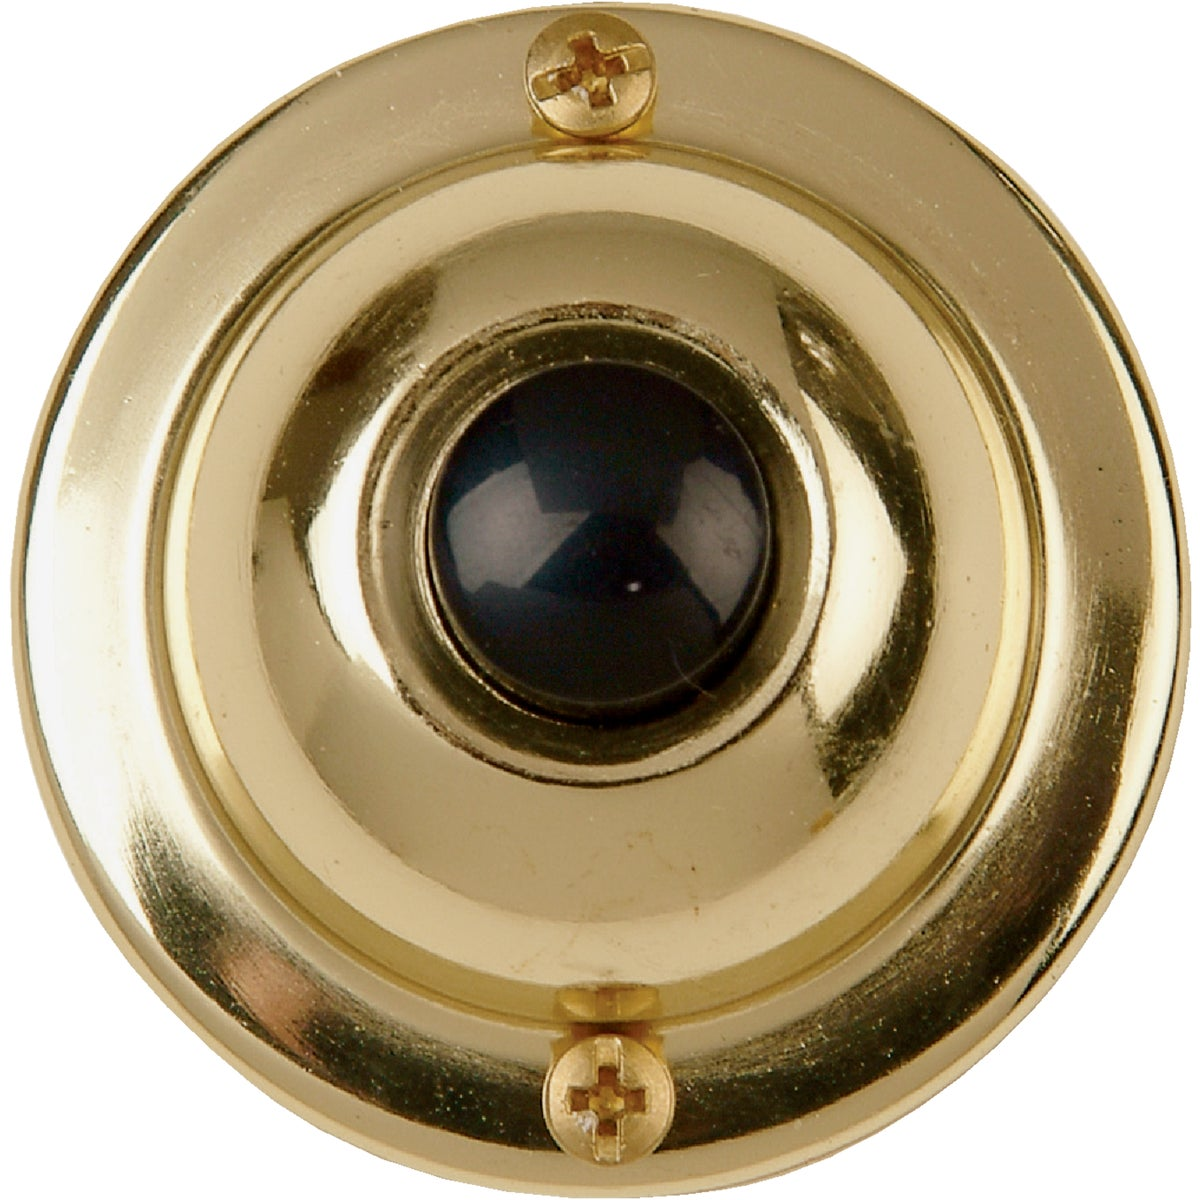 BRASS PUSH-BUTTON - DH1605 by Thomas & Betts